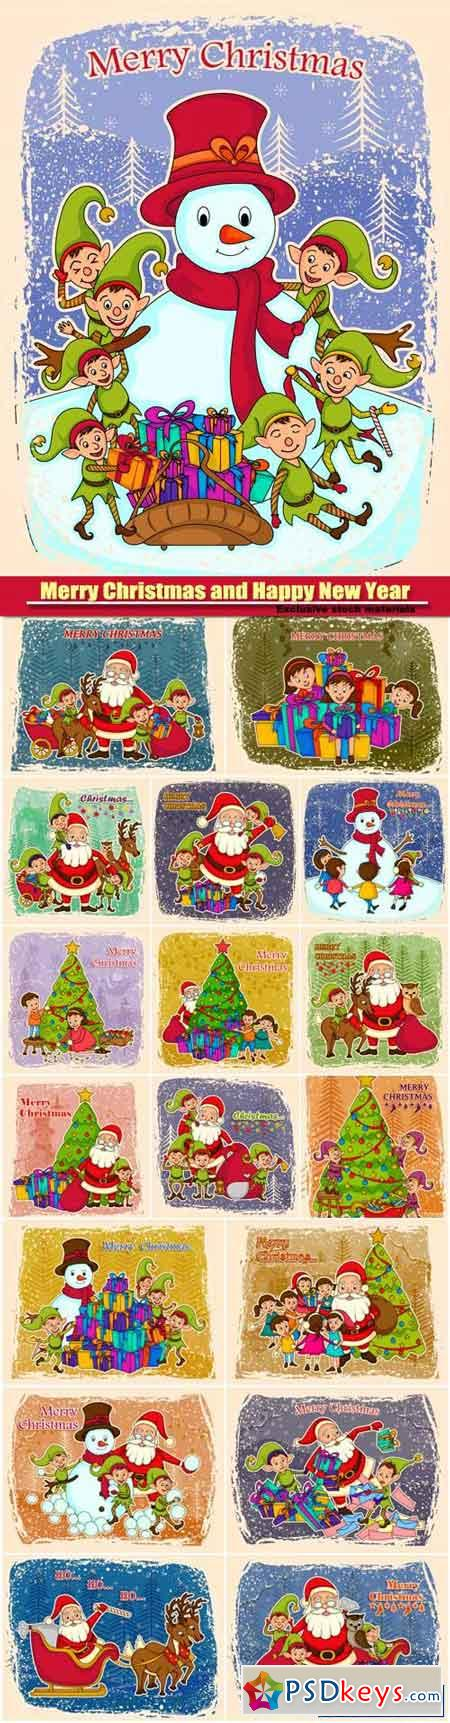 Santa Claus vector and elf making snowman for Merry Christmas